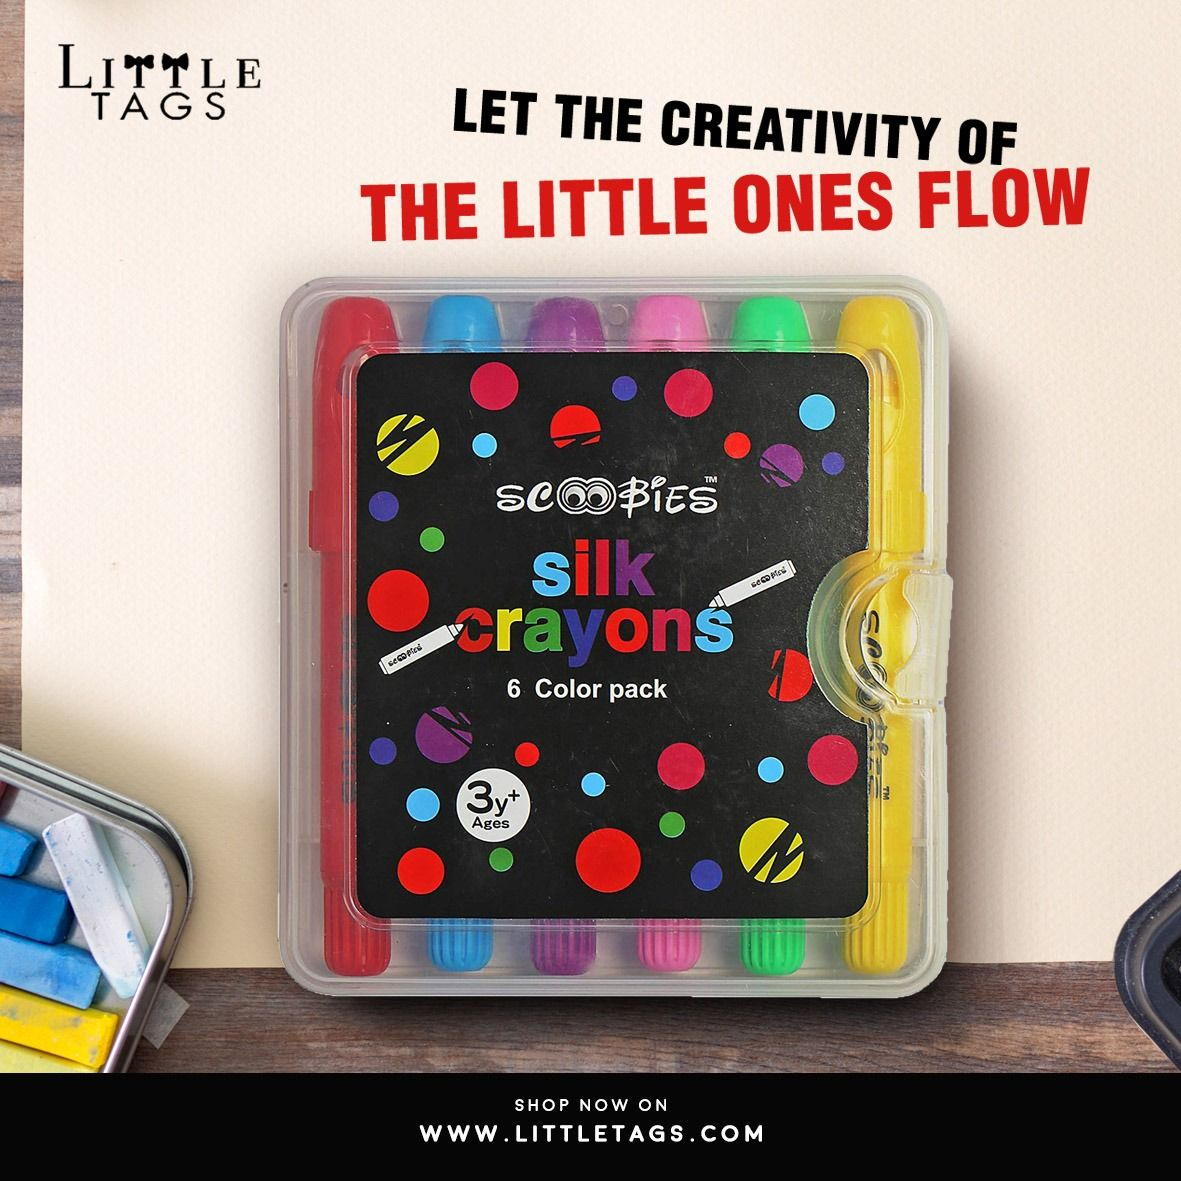 Struggling to keep the little ones engaged while they're at home? Get cool stationery from Scoobies and let them unleash their creativity. Shop now at www.littletags.com/scoobies #LittleTags #Scoobies . . . #KidsAccessories #KidsWear #KidsFashionAccessories .#Kids #FashionAccessories #KidsStyle #OnlineAccessoriesShopping #ShopAccessoriesOnline #PartyWearAccessories #CasualOutfitAccessories #CasualWear #CasualStyle #EthnicWear #TraditionalWear #InstaKids #KidsOfInstagram #OOTD